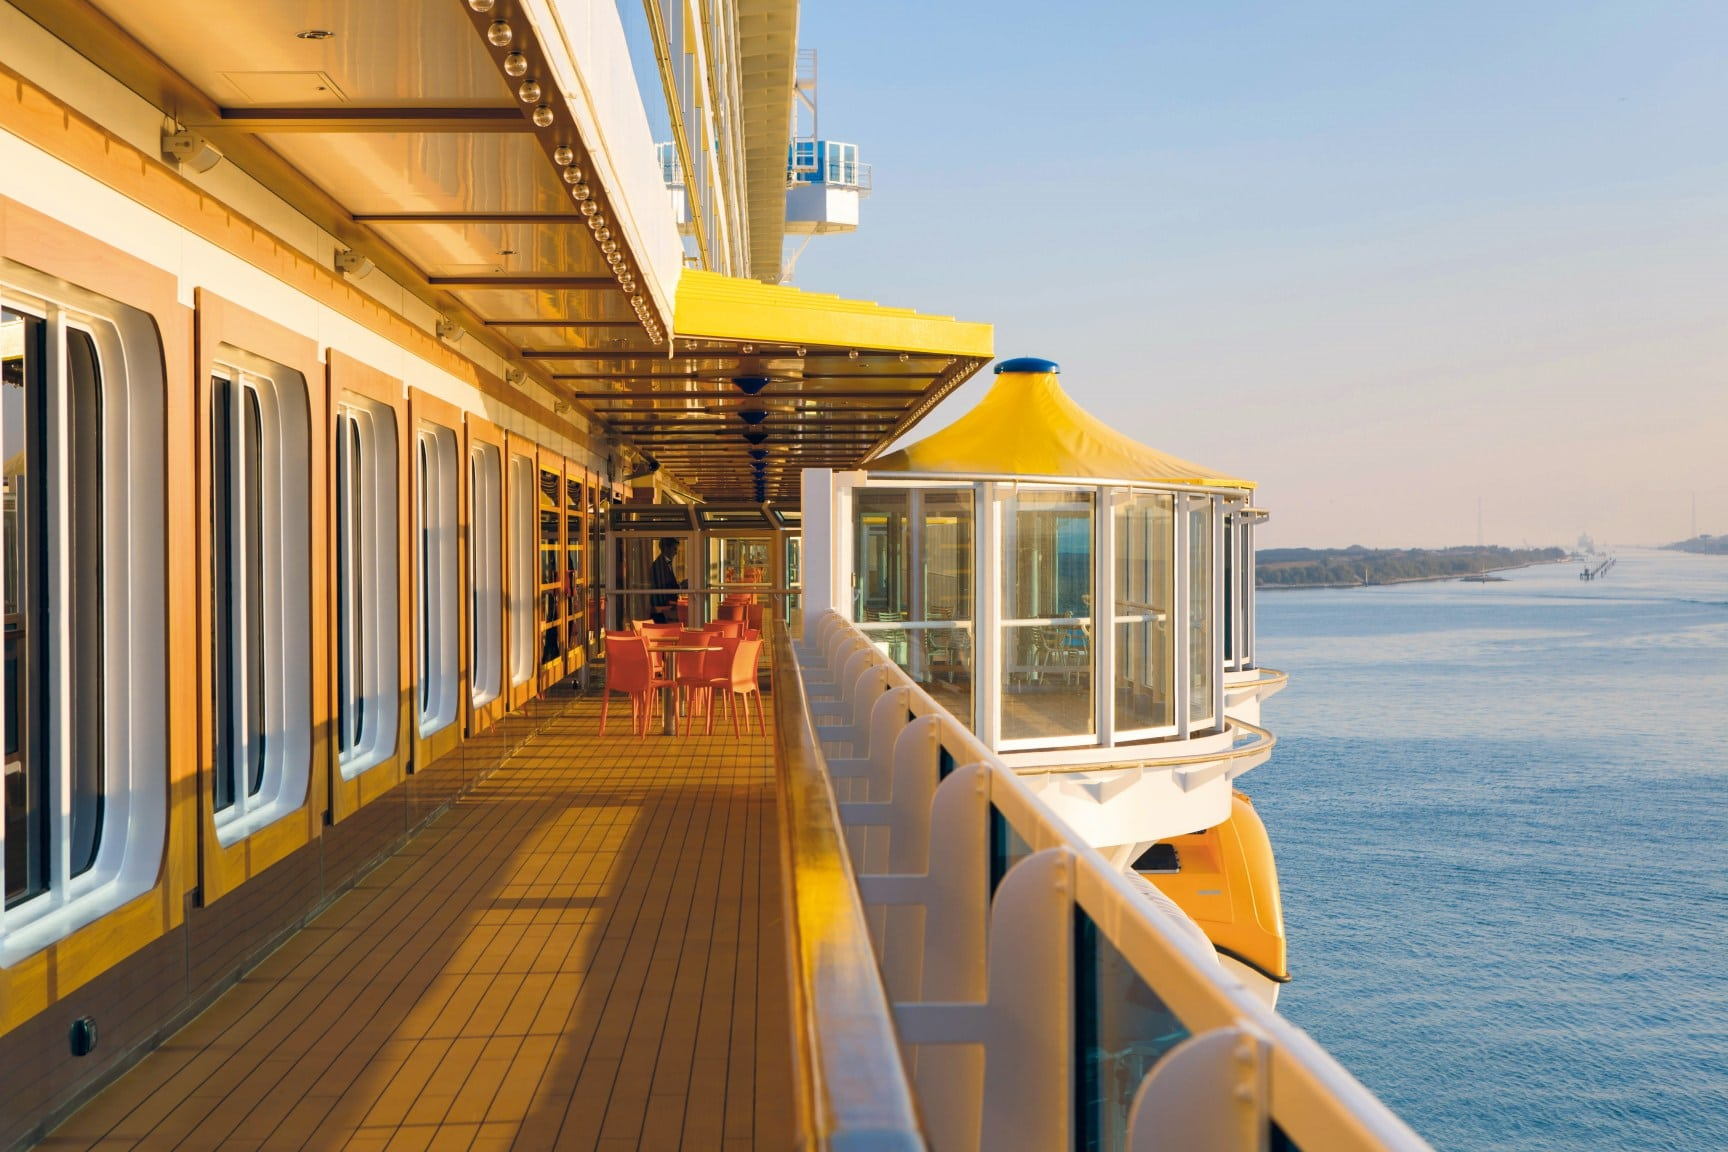 Costa Diadema Cruiserecensies